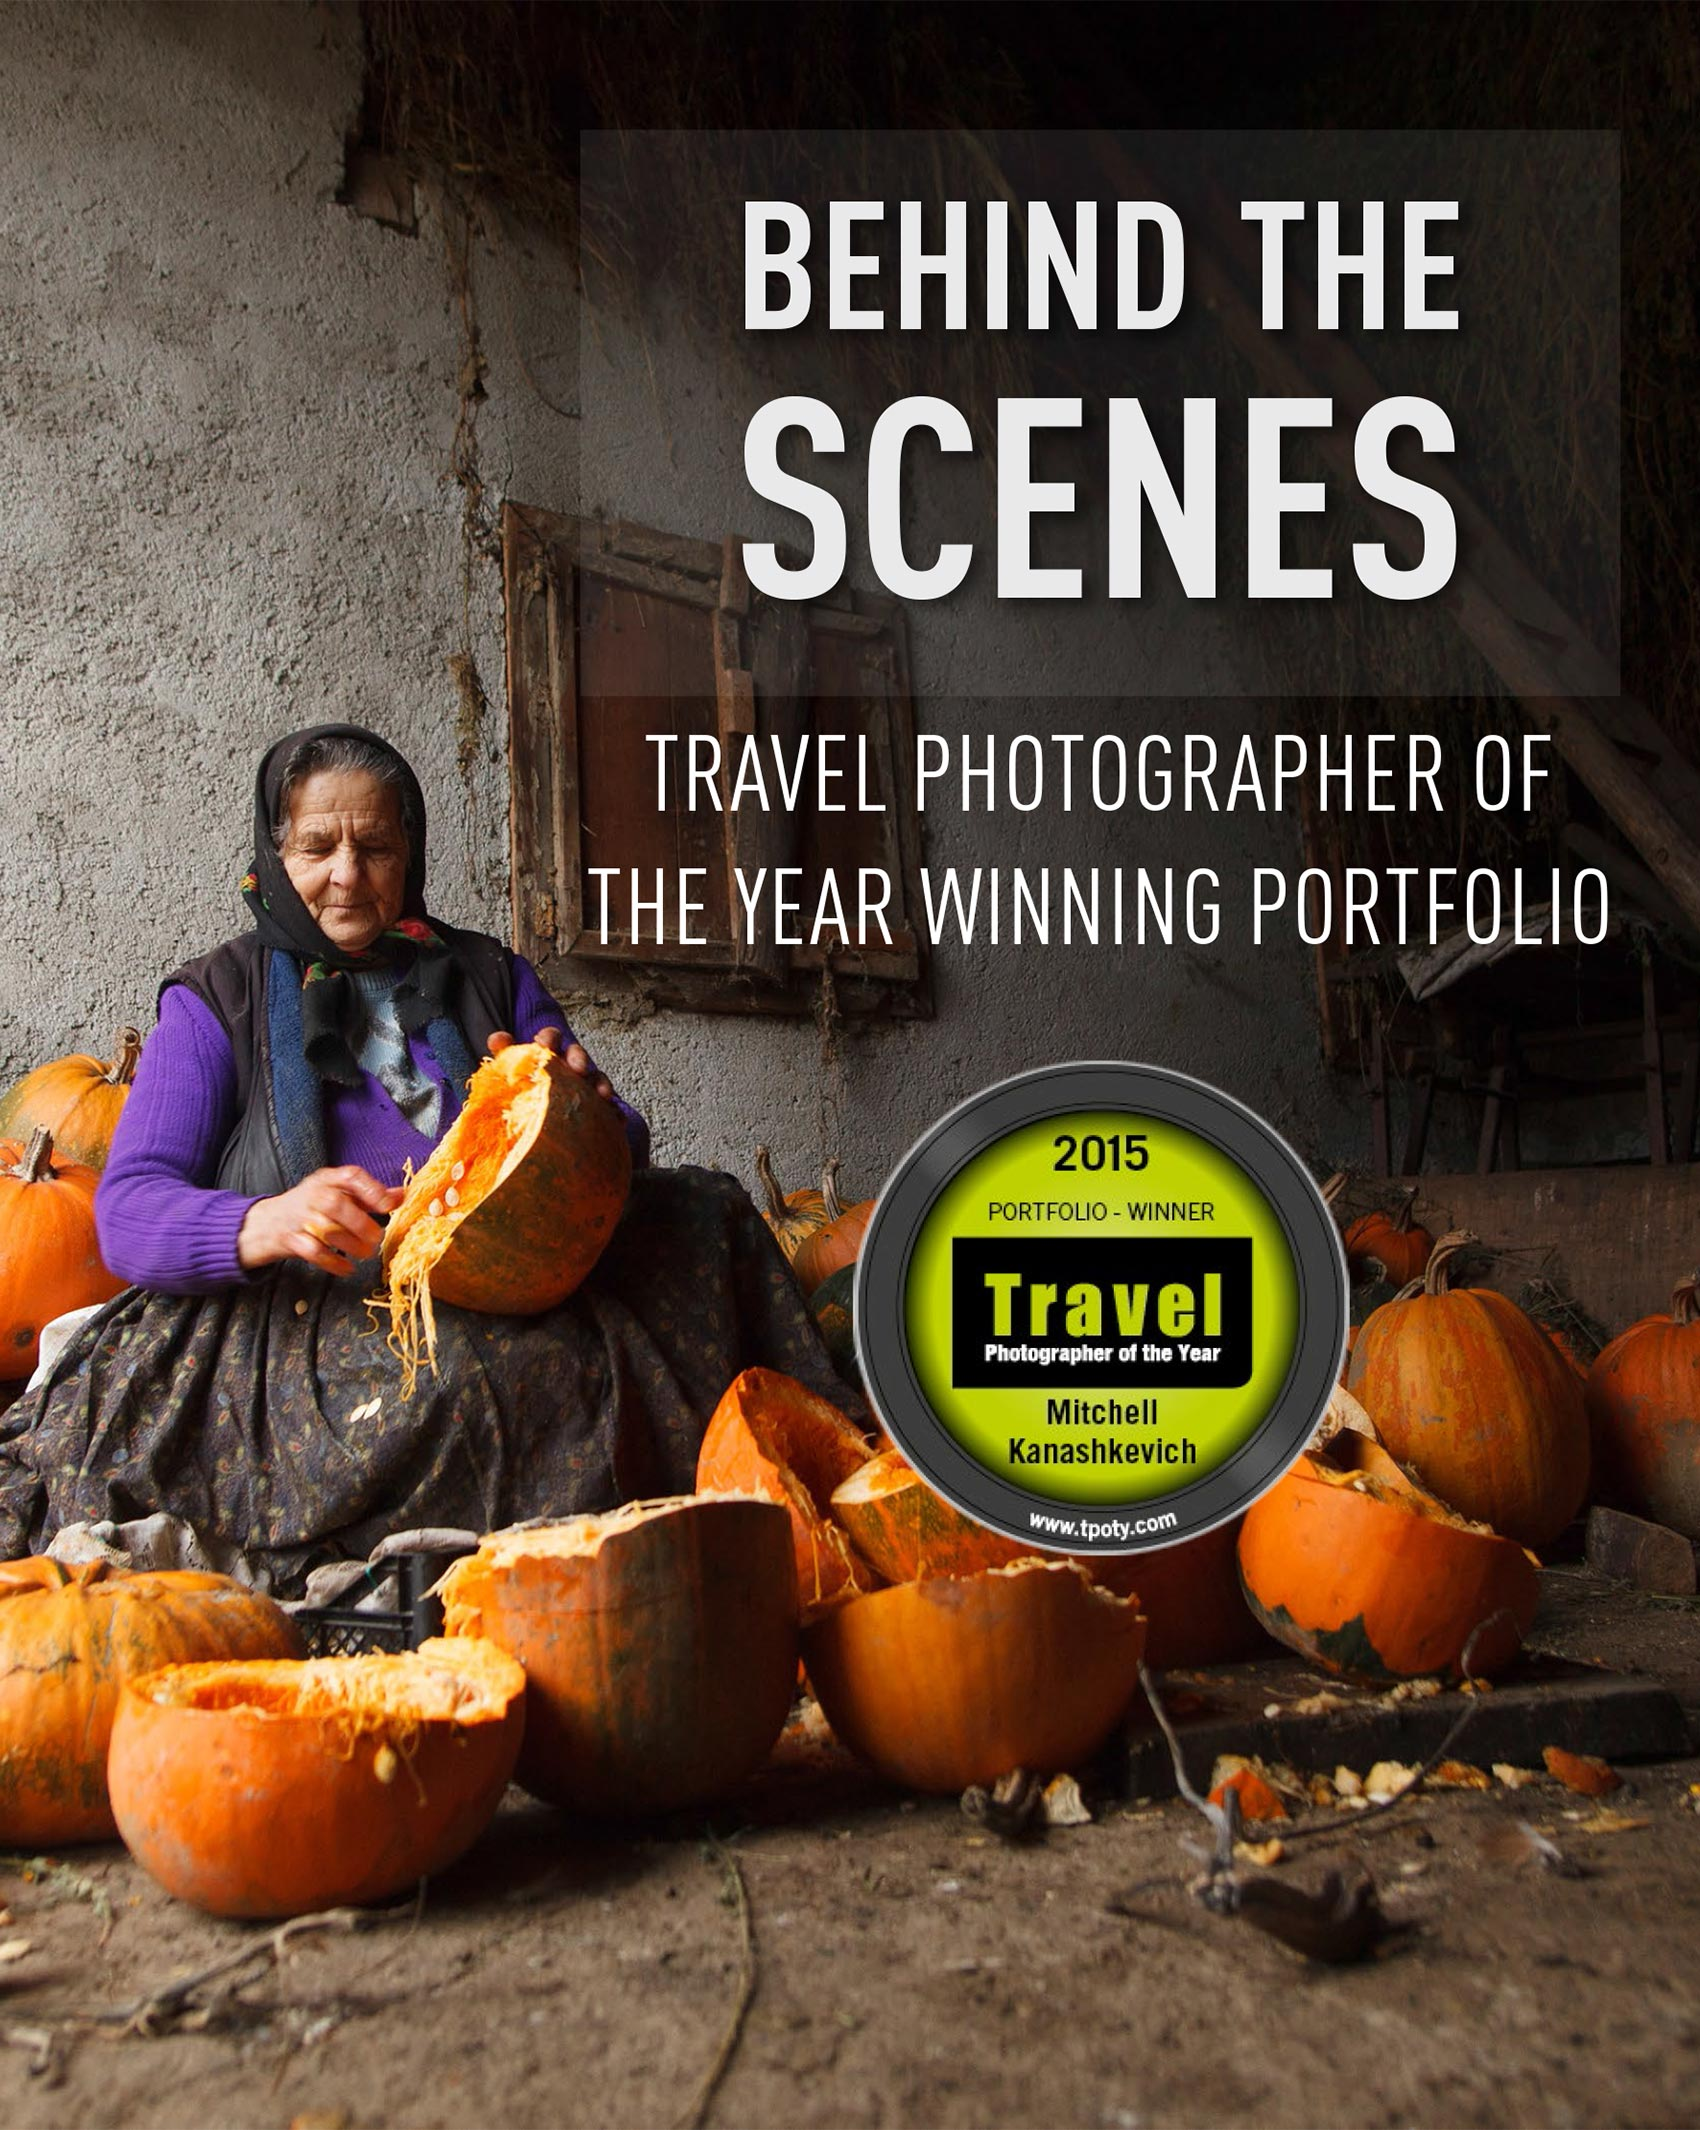 Travel Photographer of the year educational resource